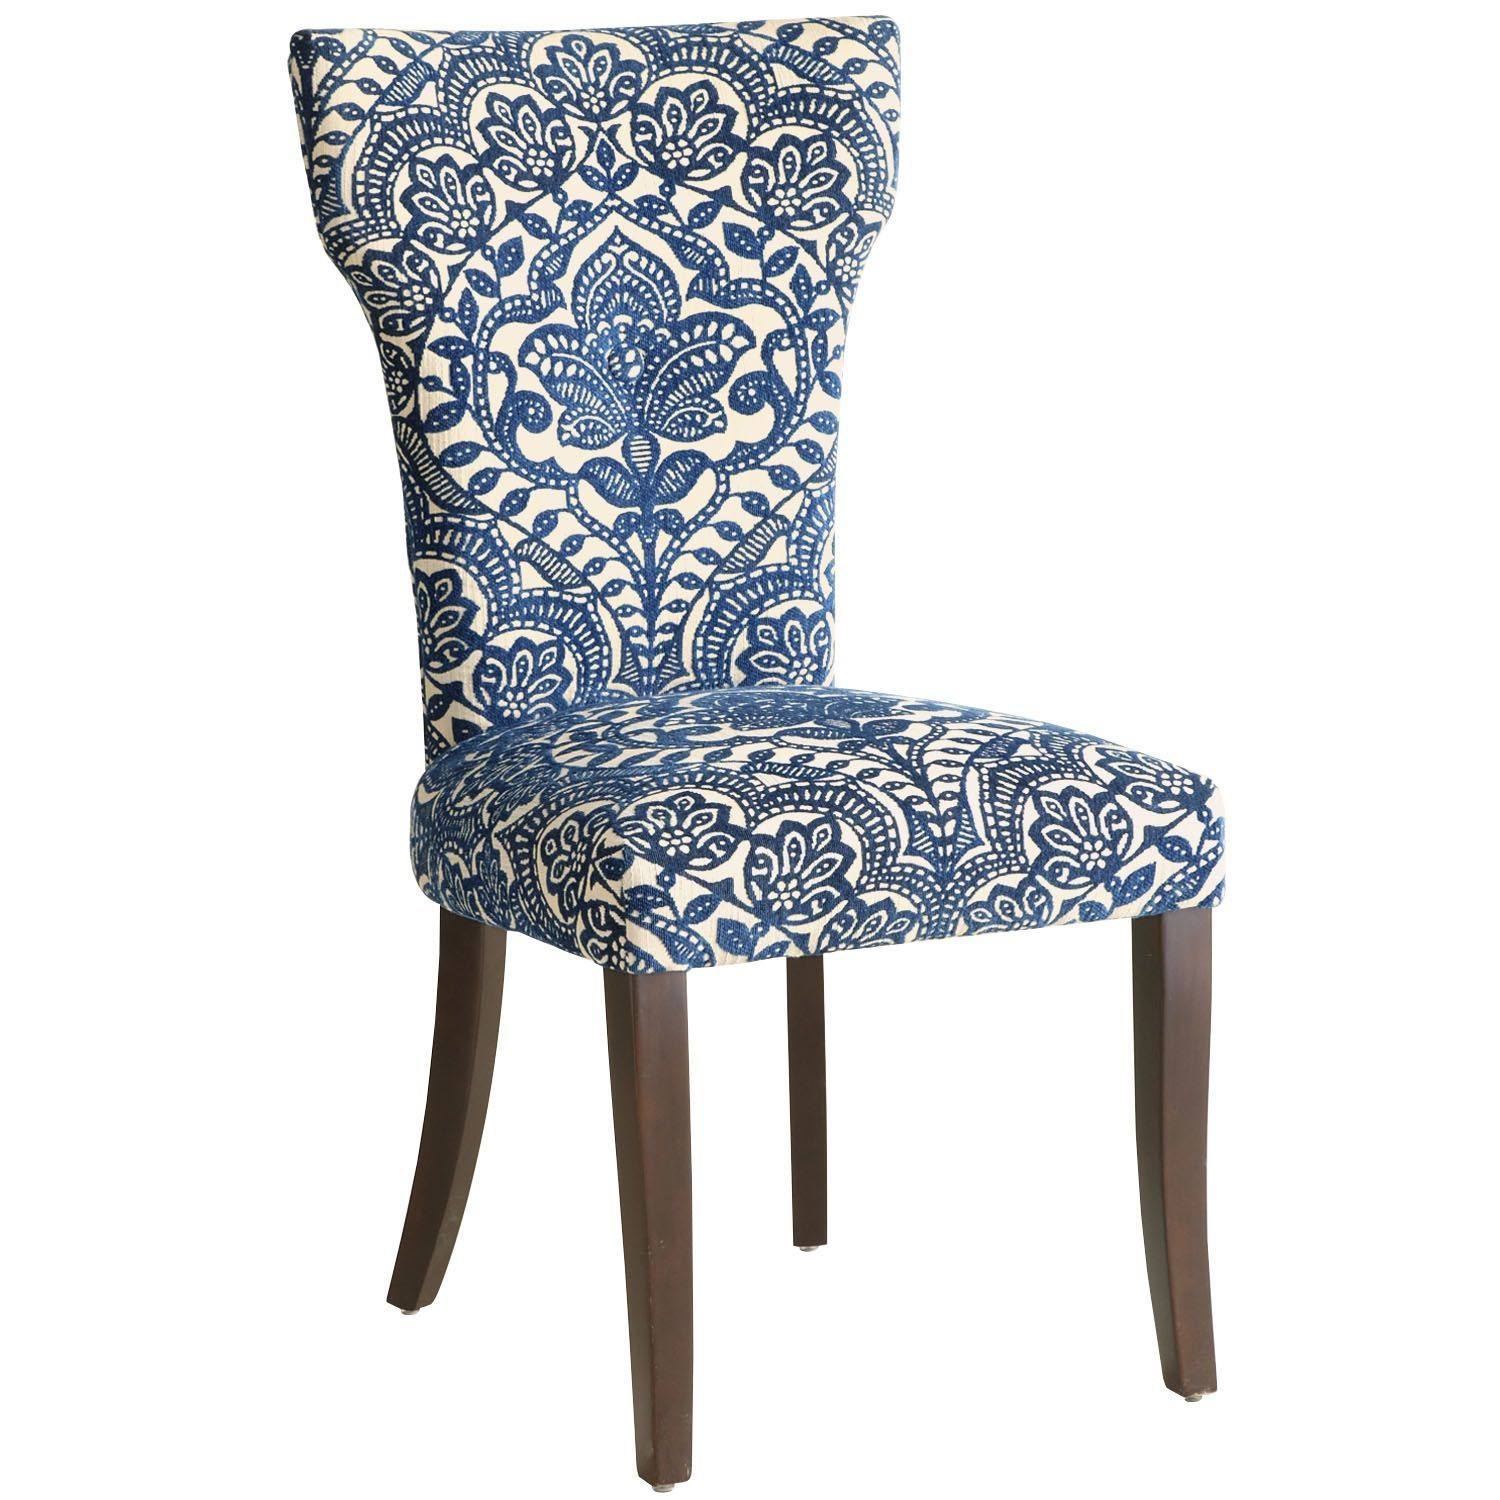 Carmilla Dining Chair Blue Damask Pier 1 Imports Dining Chairs Dining Room Chairs Damask